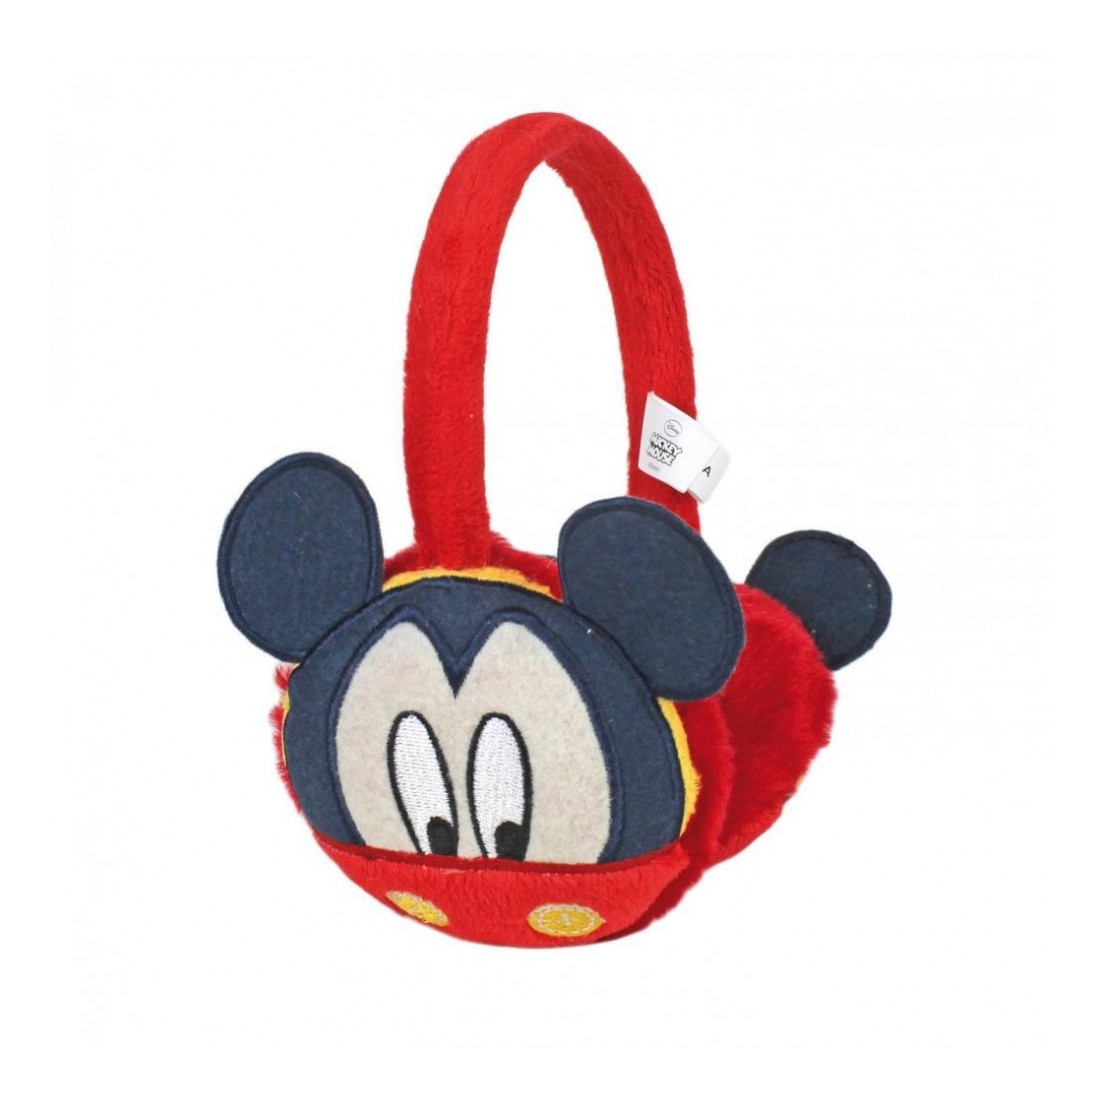 OREJERAS MICKEY DISNEY